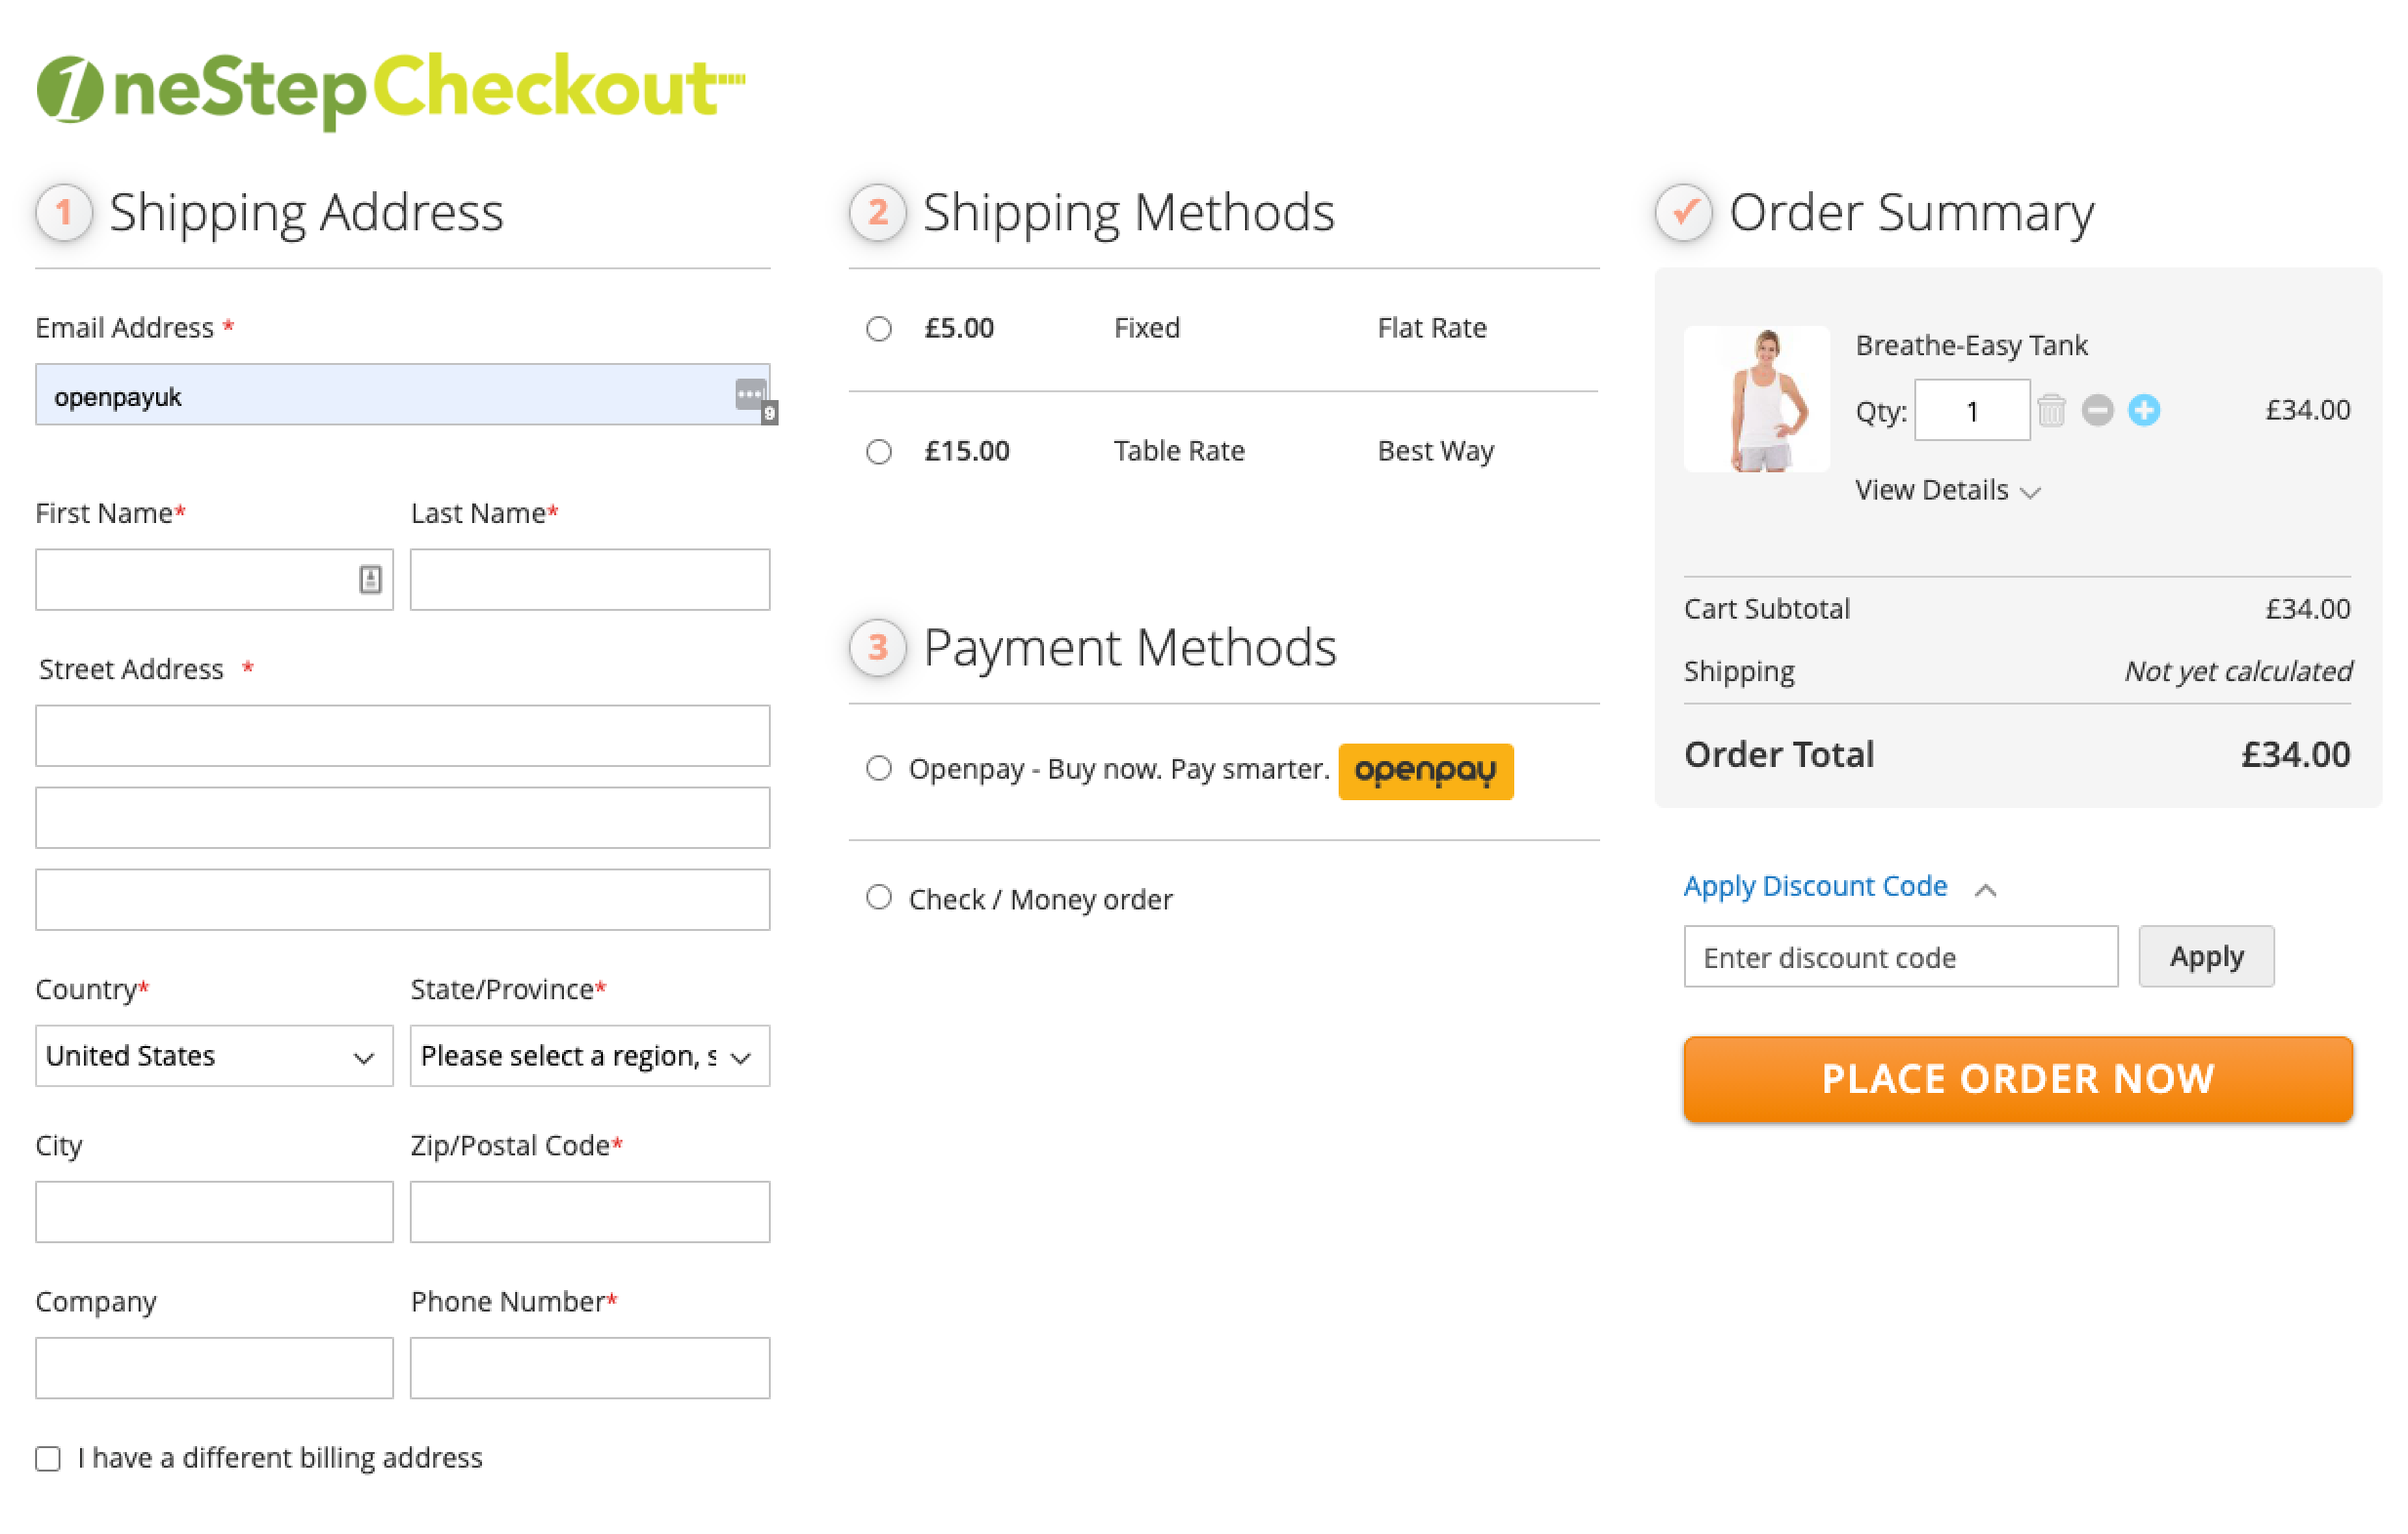 One Step Checkout integration with Buy Now Pay Later BNPL Openpay